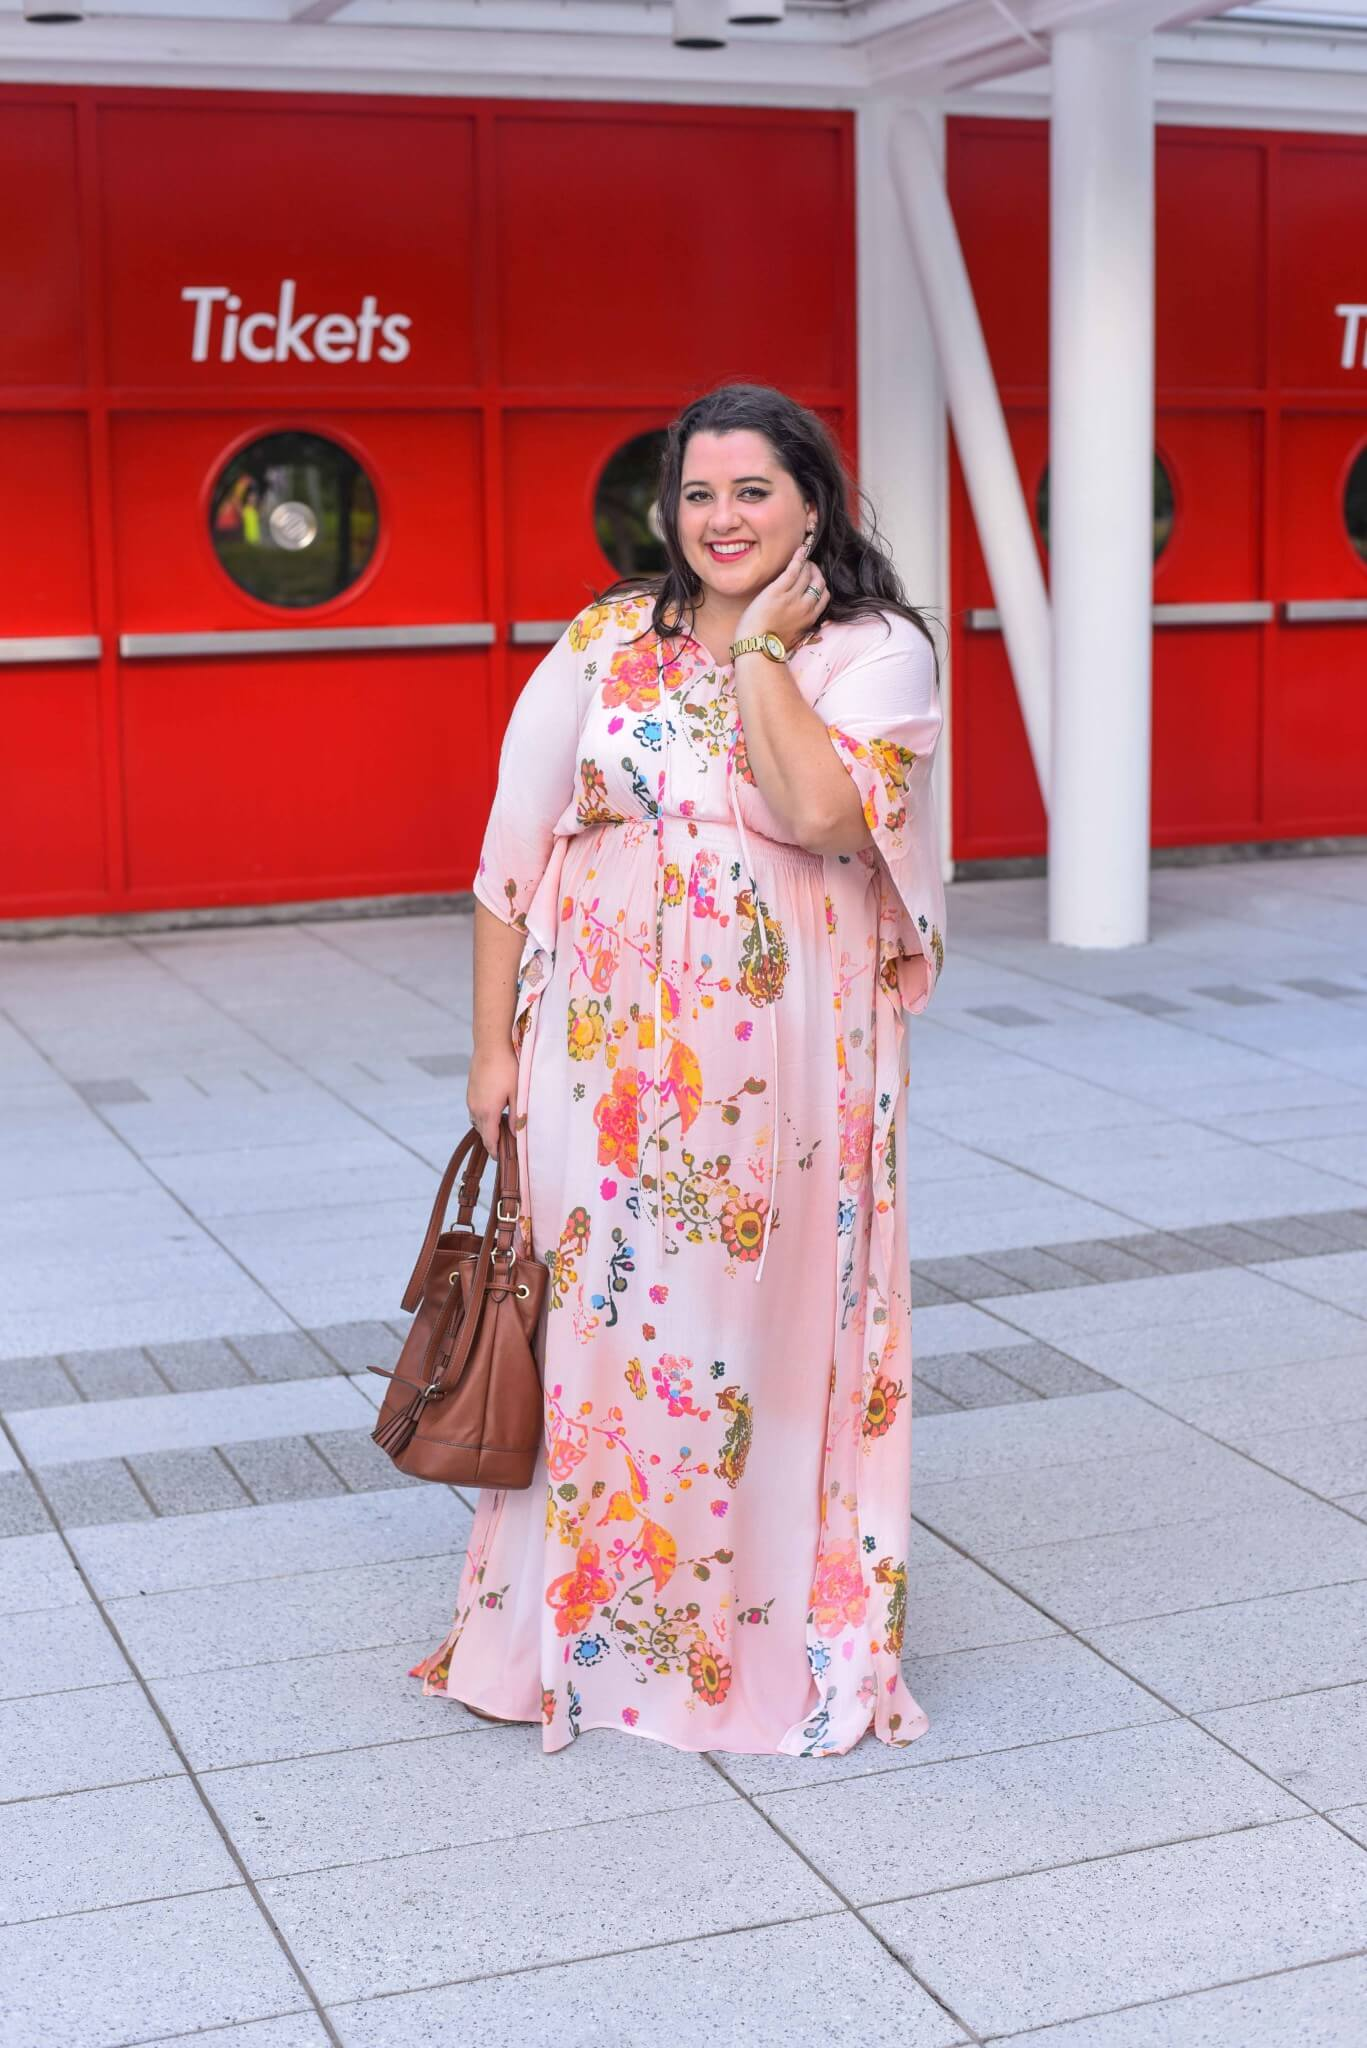 When looking for a maxi dress to include in my curvy closet, I always look for something that can easily transition from day to night. This plus size maxi dress from my Gwynnie Bee clothing subscription was perfect for roaming around Houston. #plussizefashion #plussizedresses